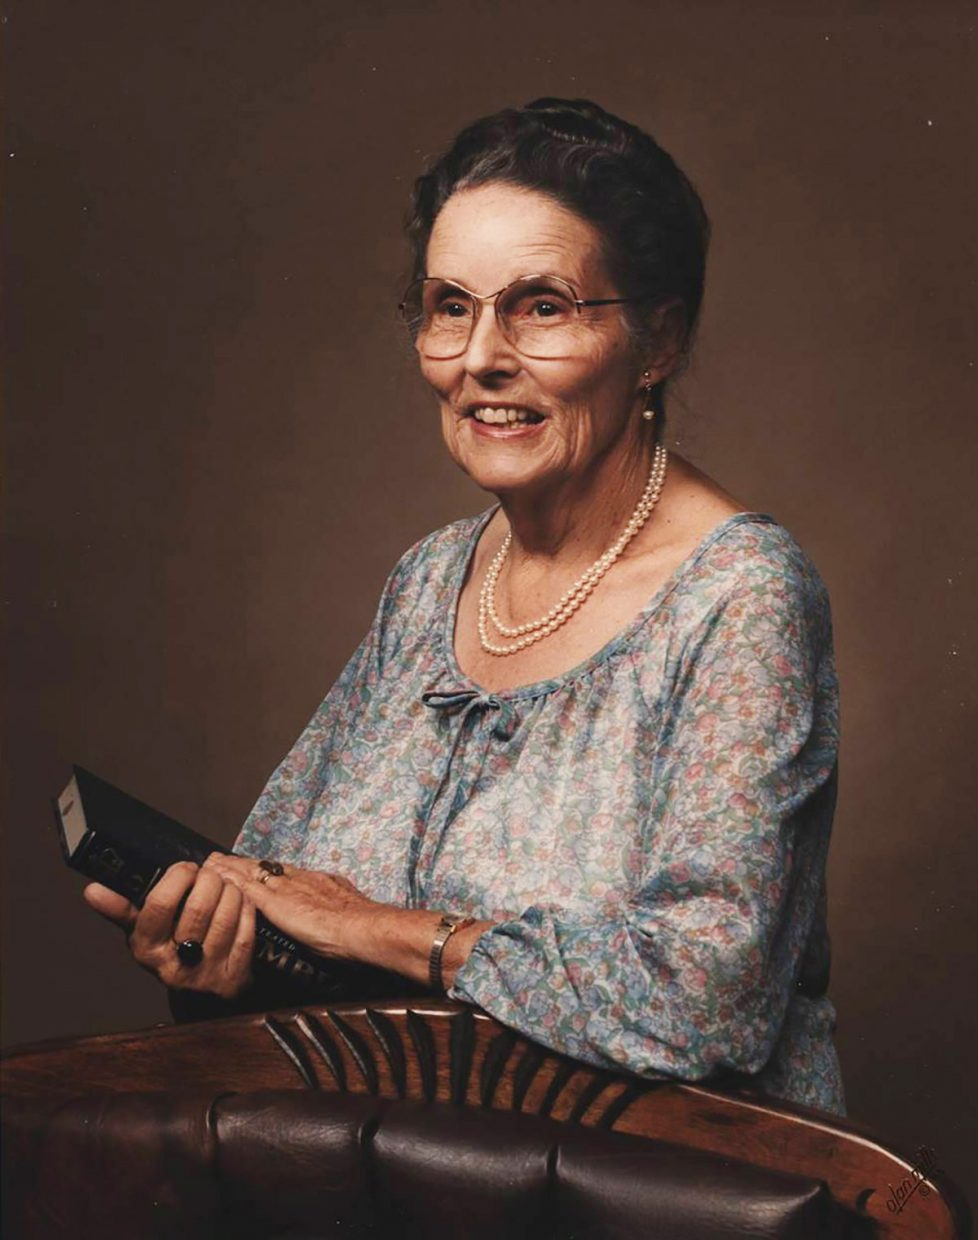 Yampa Valley College founder Lucile Bogue